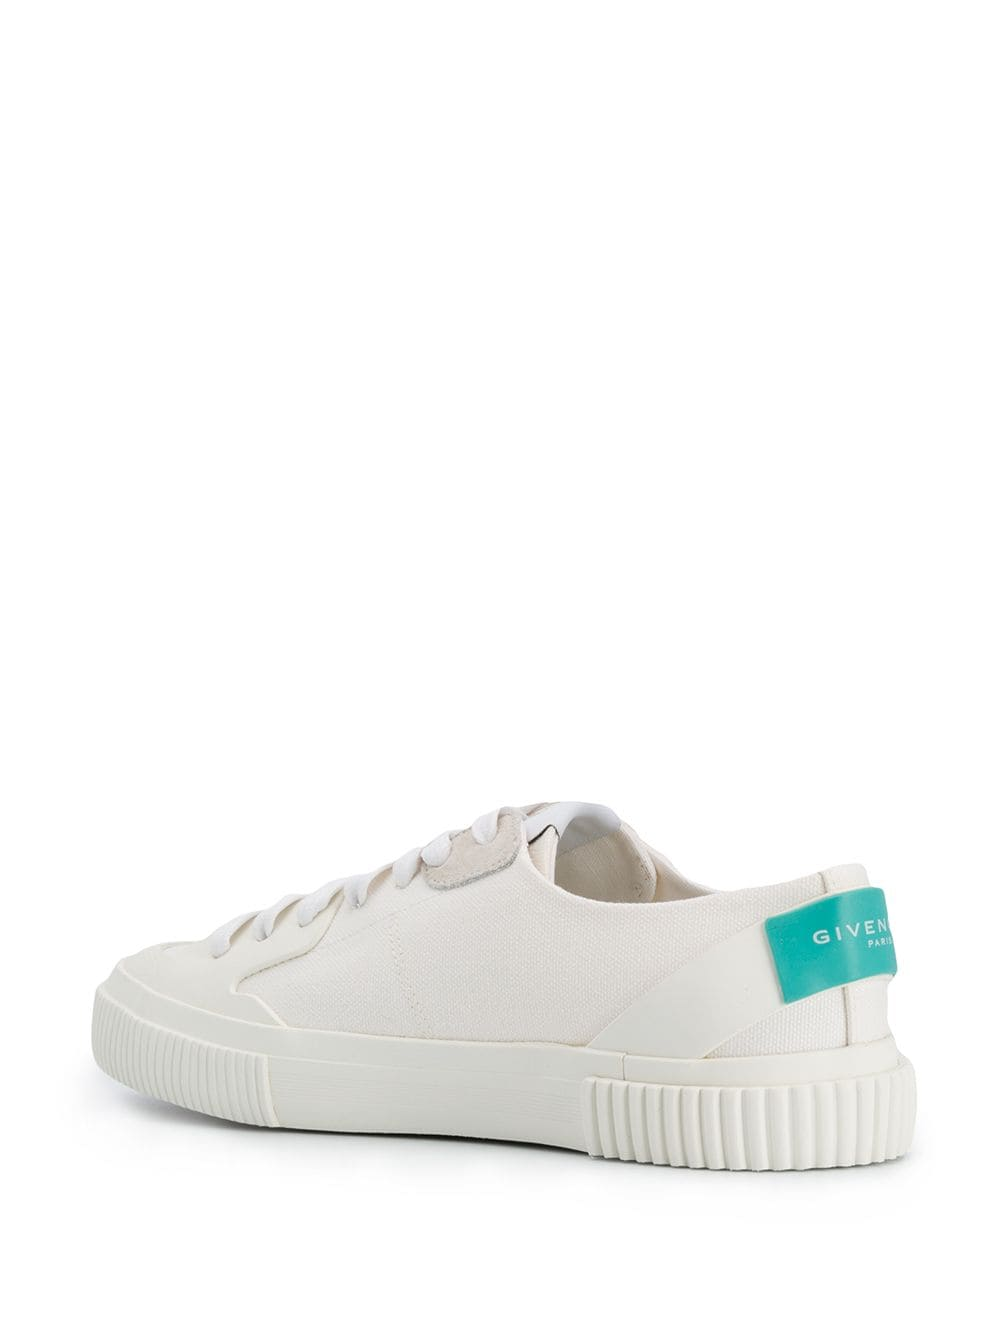 Tennis Light Sneakers